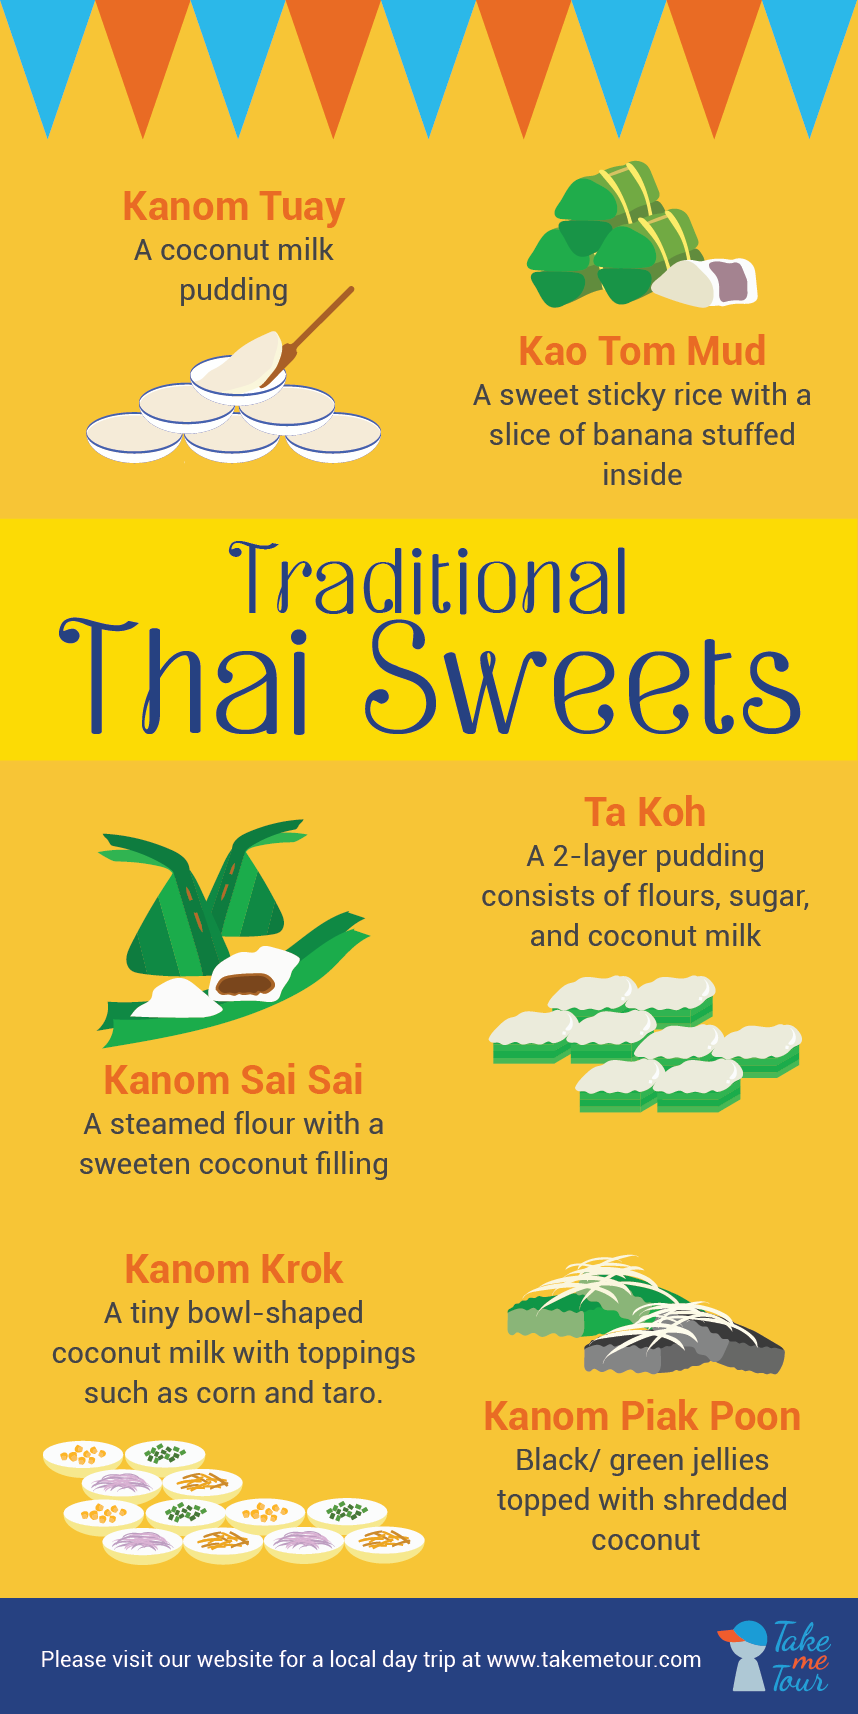 traditional, thai, sweets, dessert, kanom